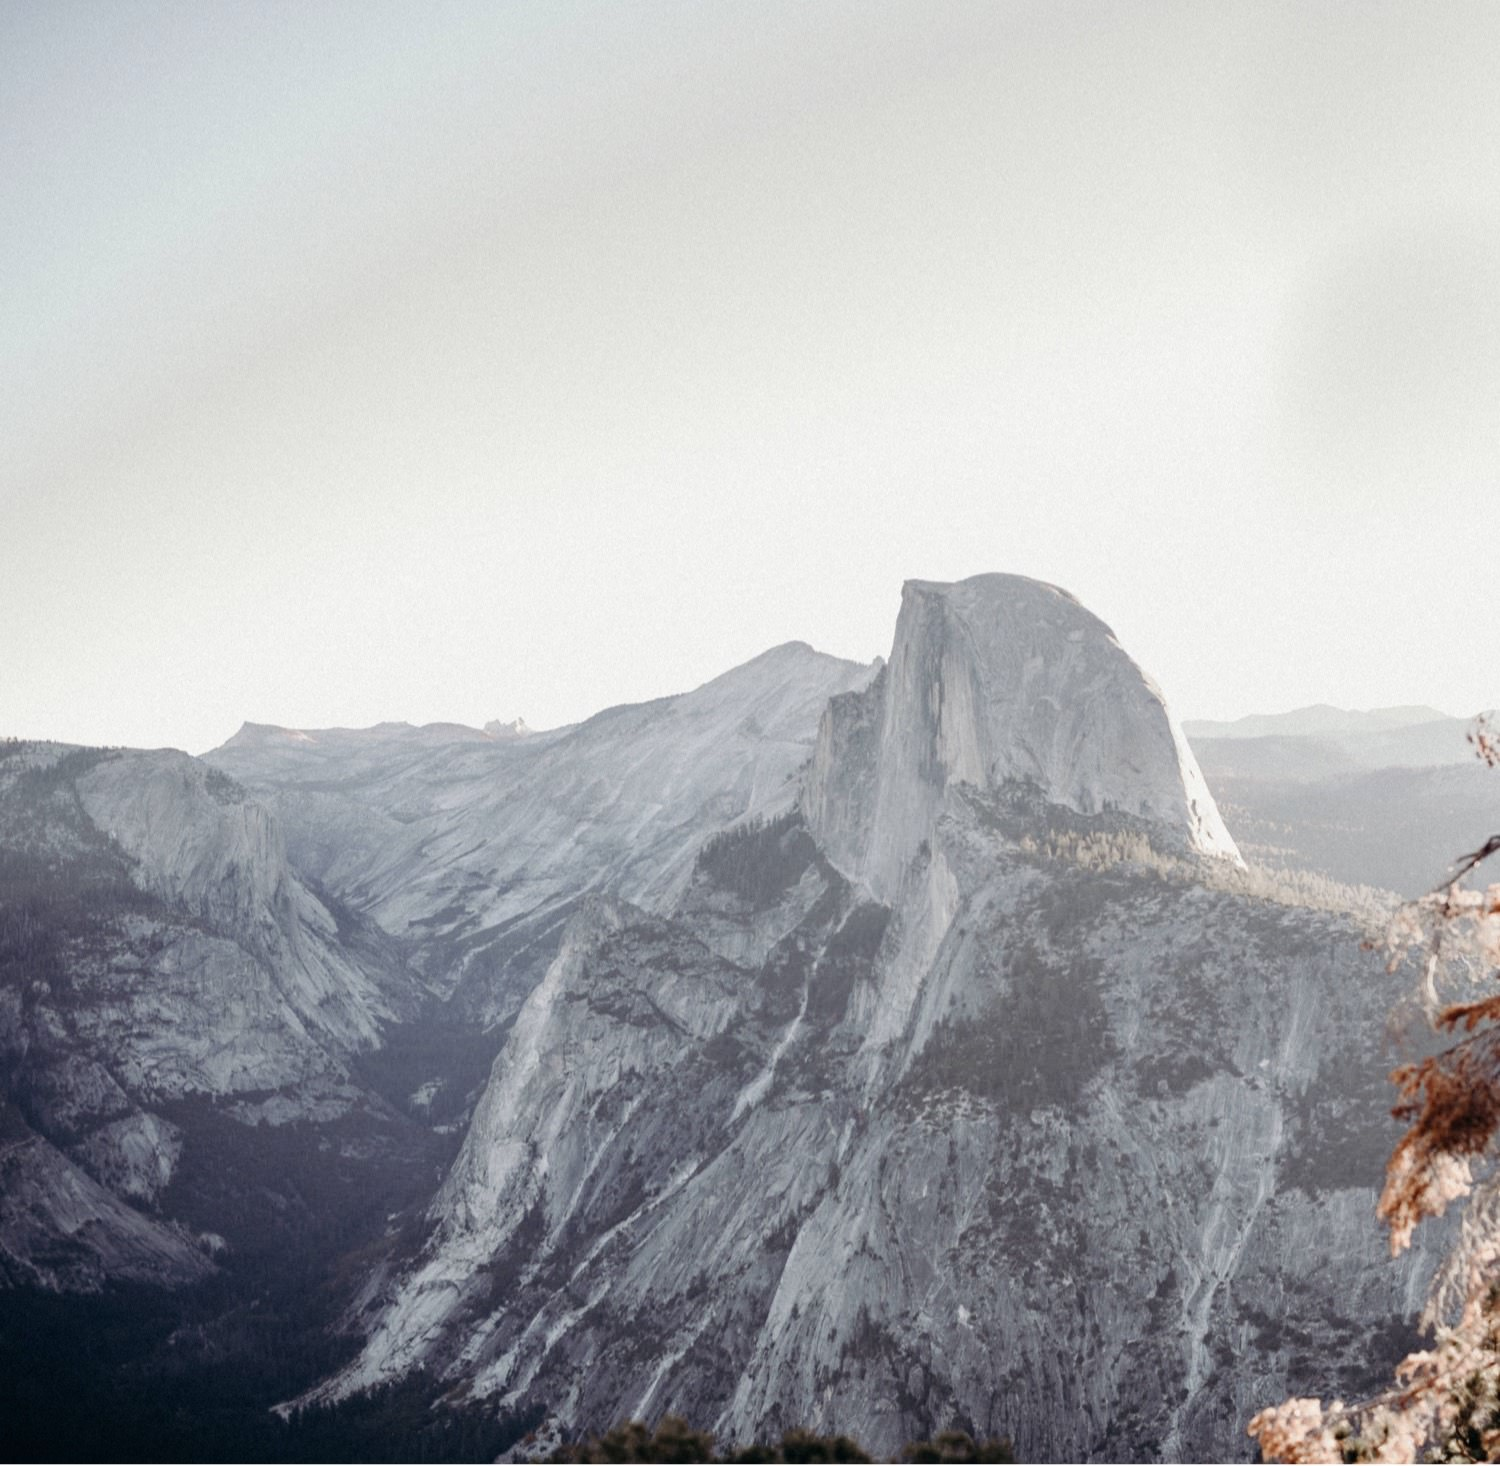 13_alex+matt-wedding-107_park_national_elopement_wedding_yosemite_intimate.jpg